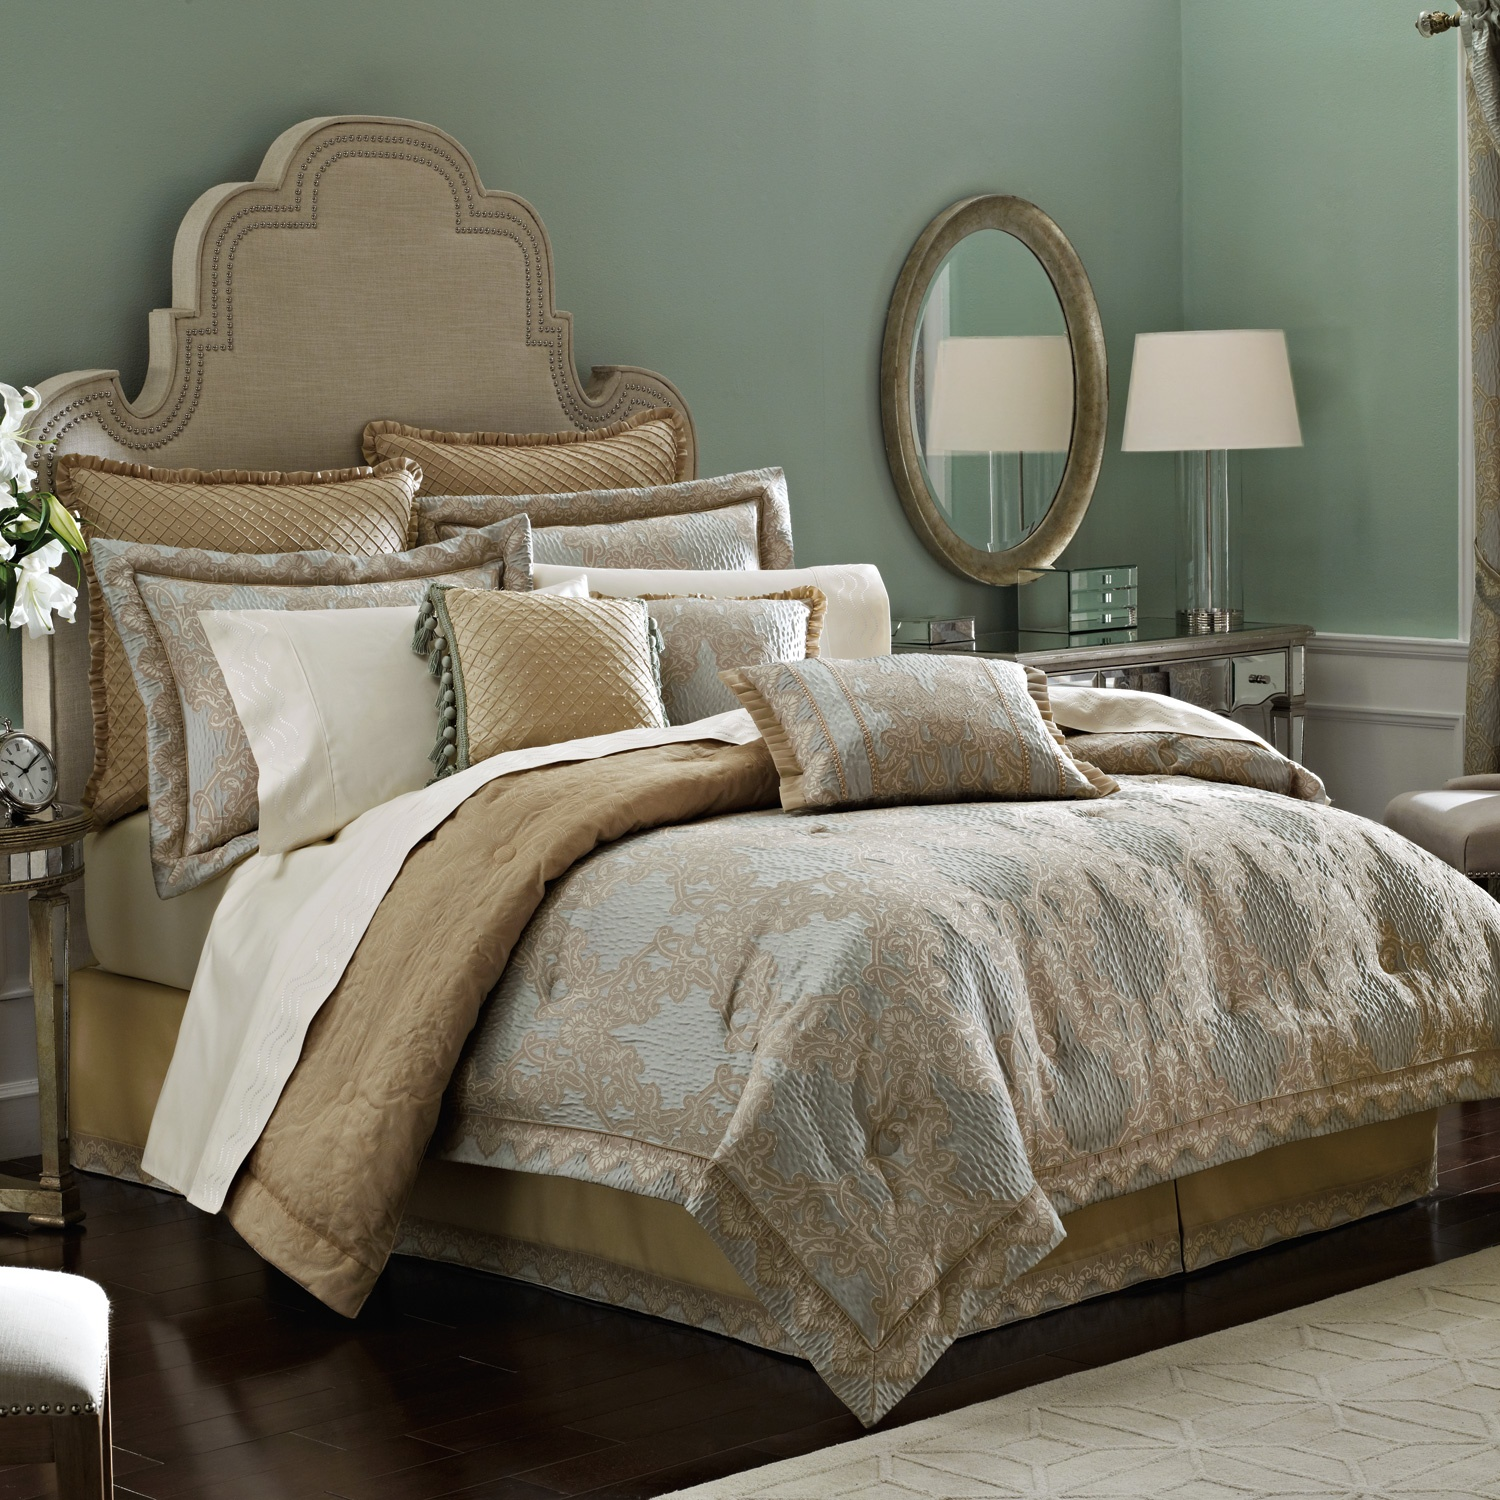 Attractive comforters sets for bedroom design with queen comforter sets